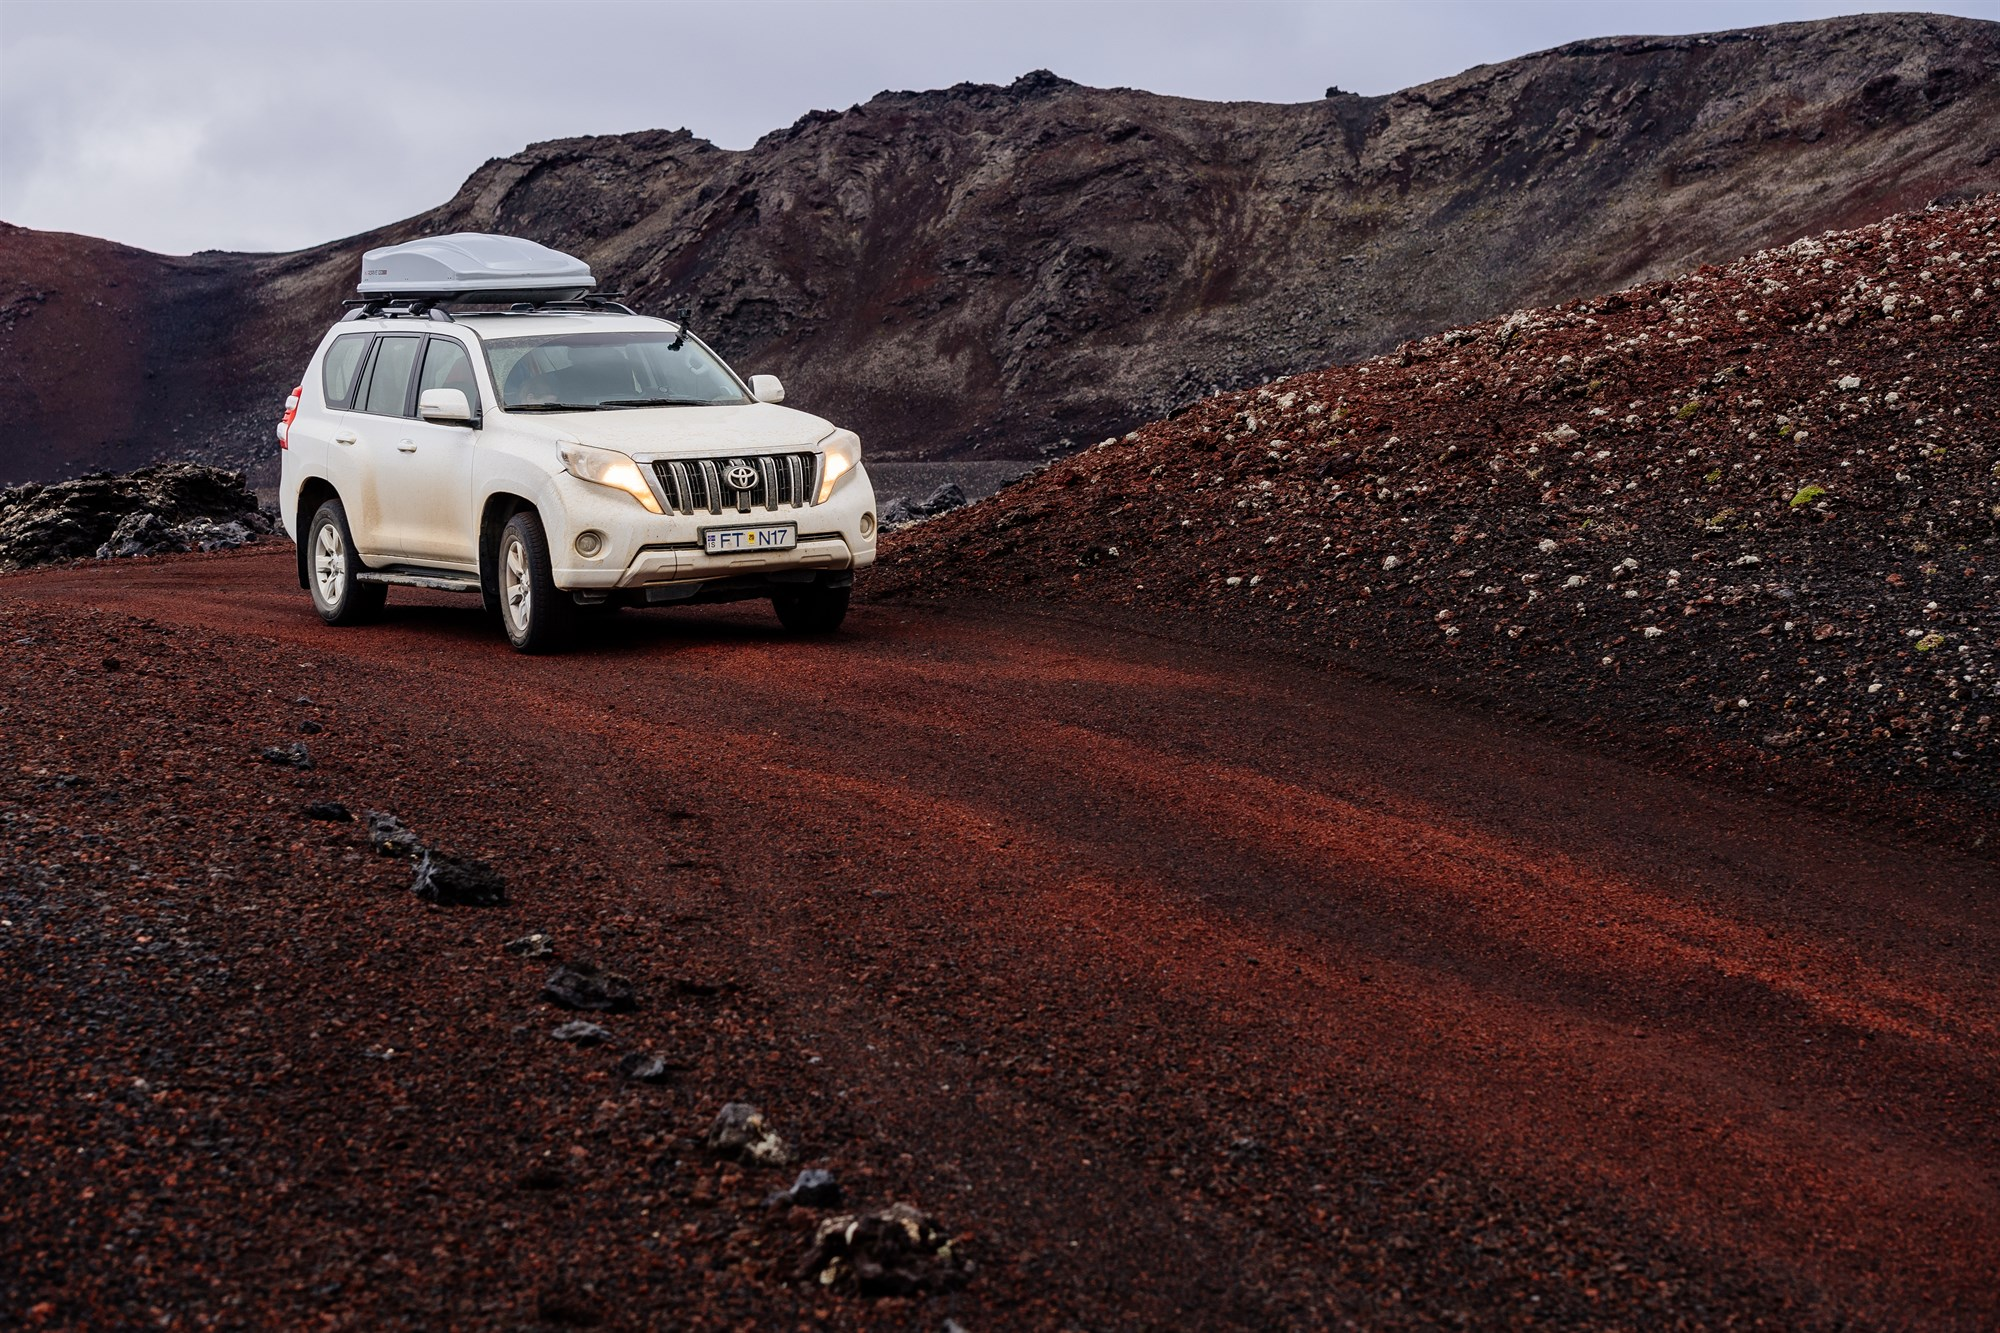 Toyota SUV on Icelandic Red Dirt Road